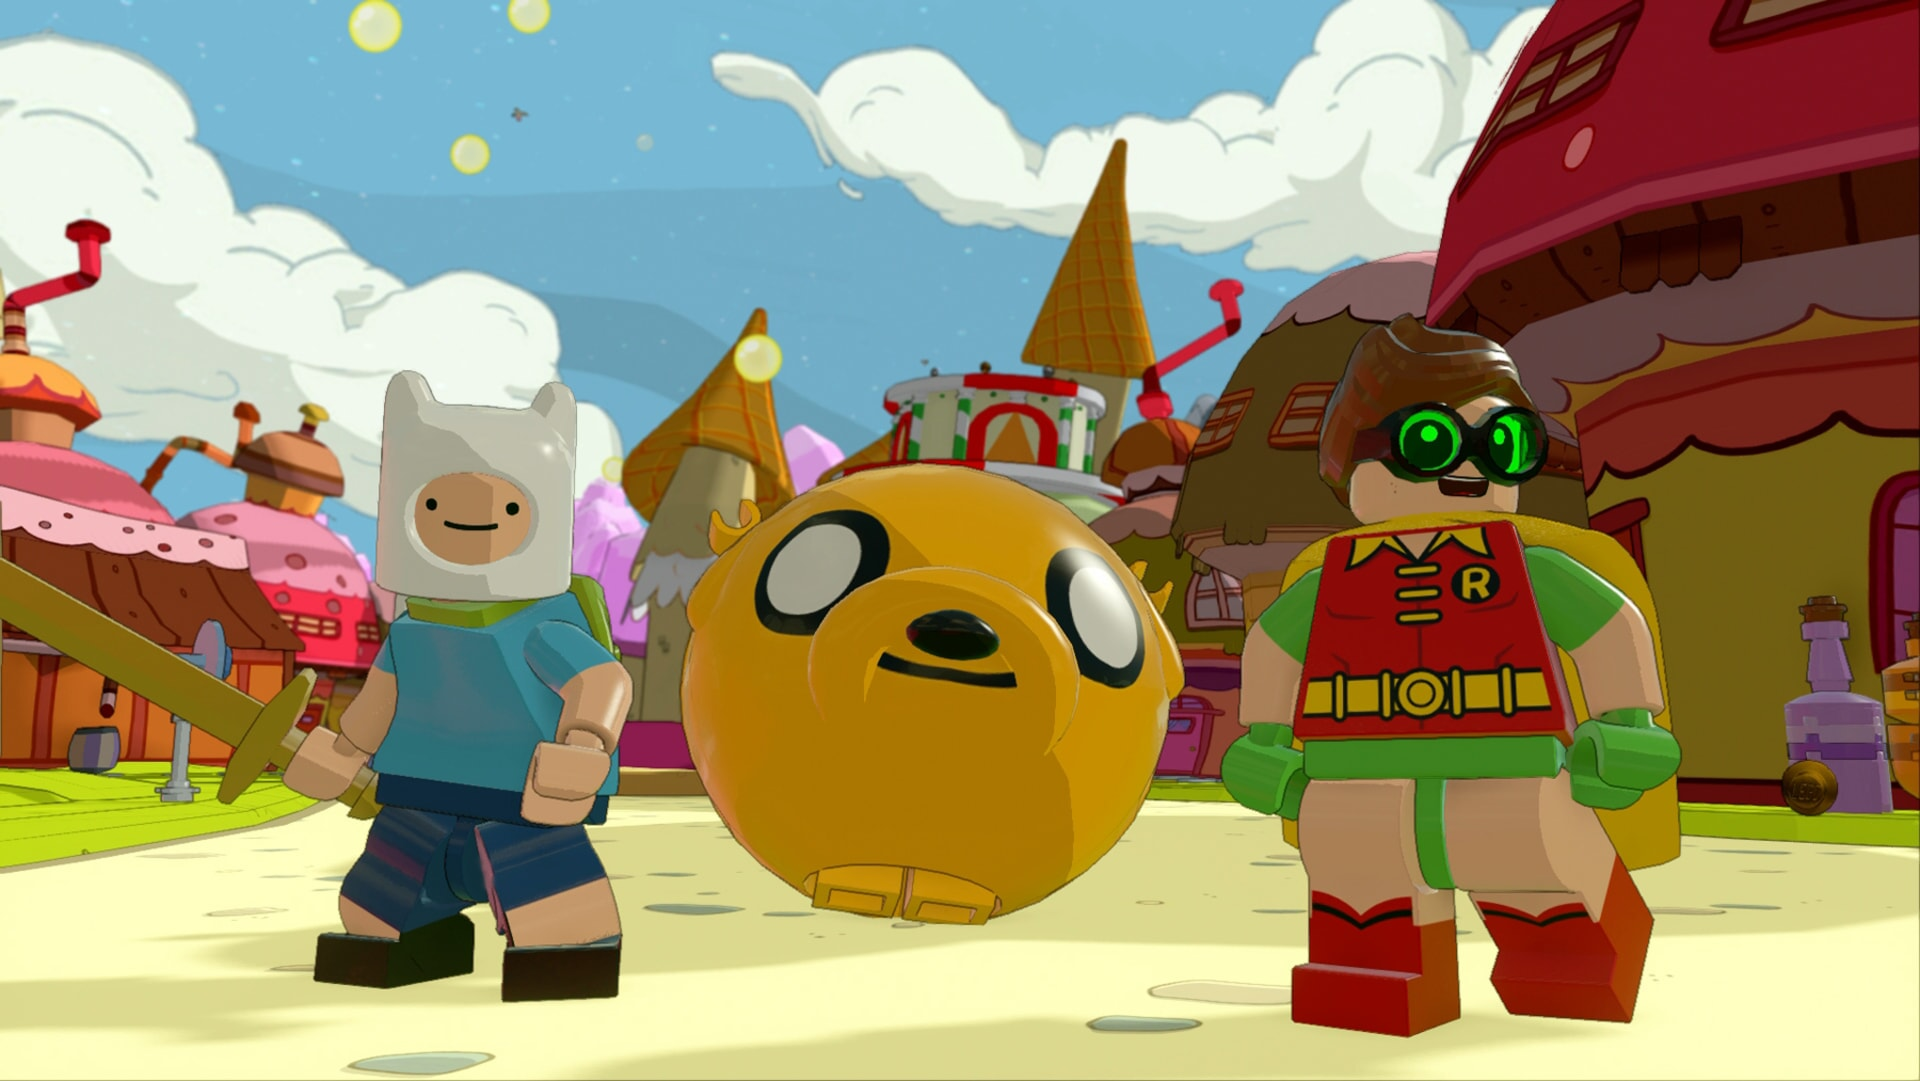 LEGO Dimensions: Adventure time characters and Robin